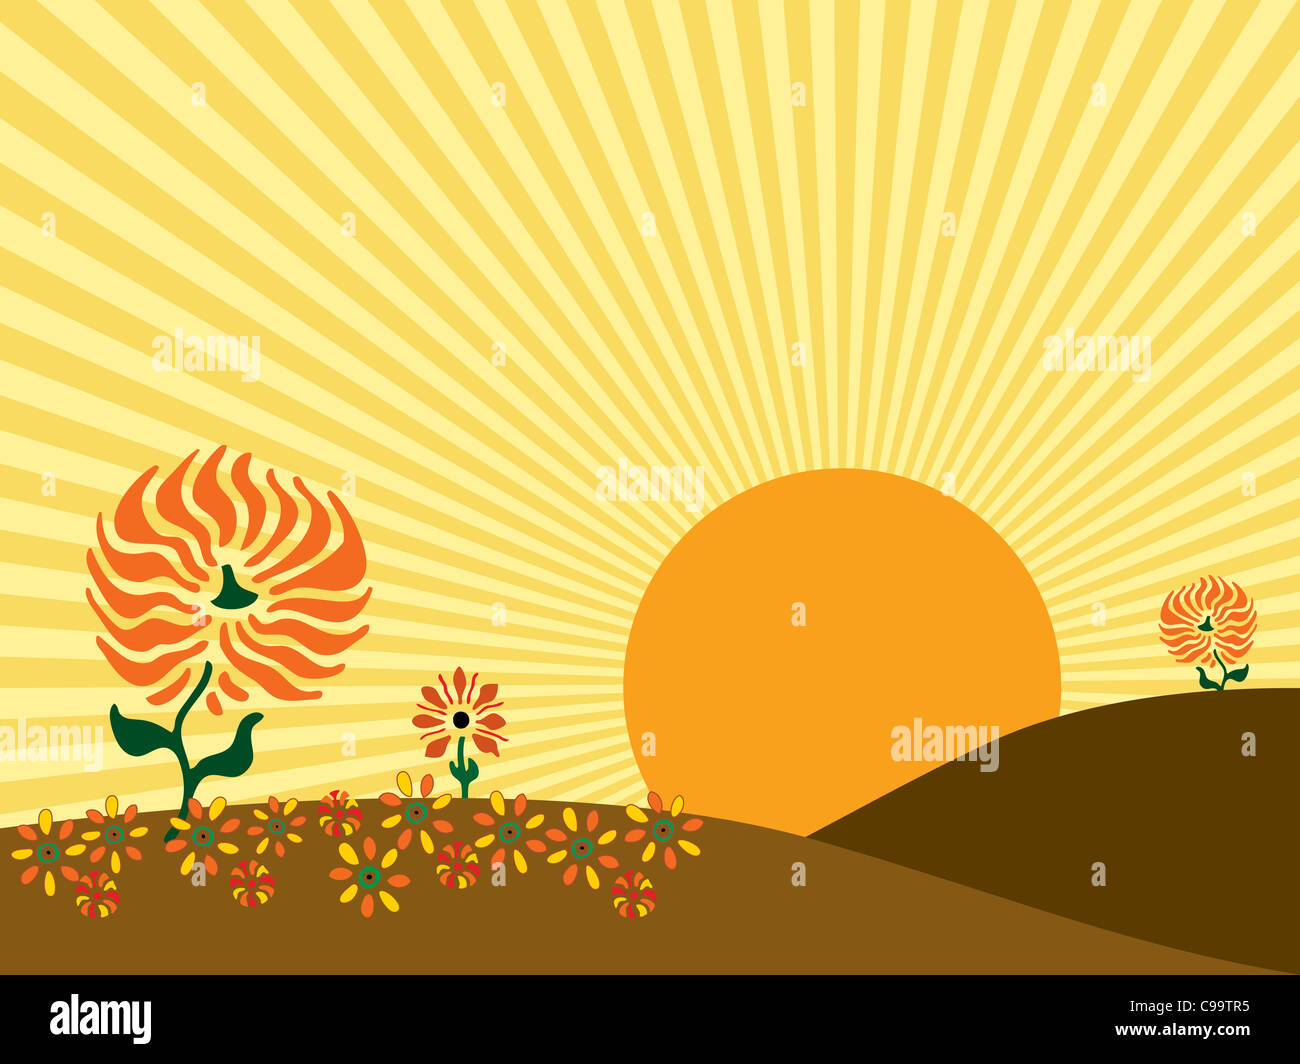 Illustration of a large sun rising behind the hills of an autumn meadow. - Stock Image